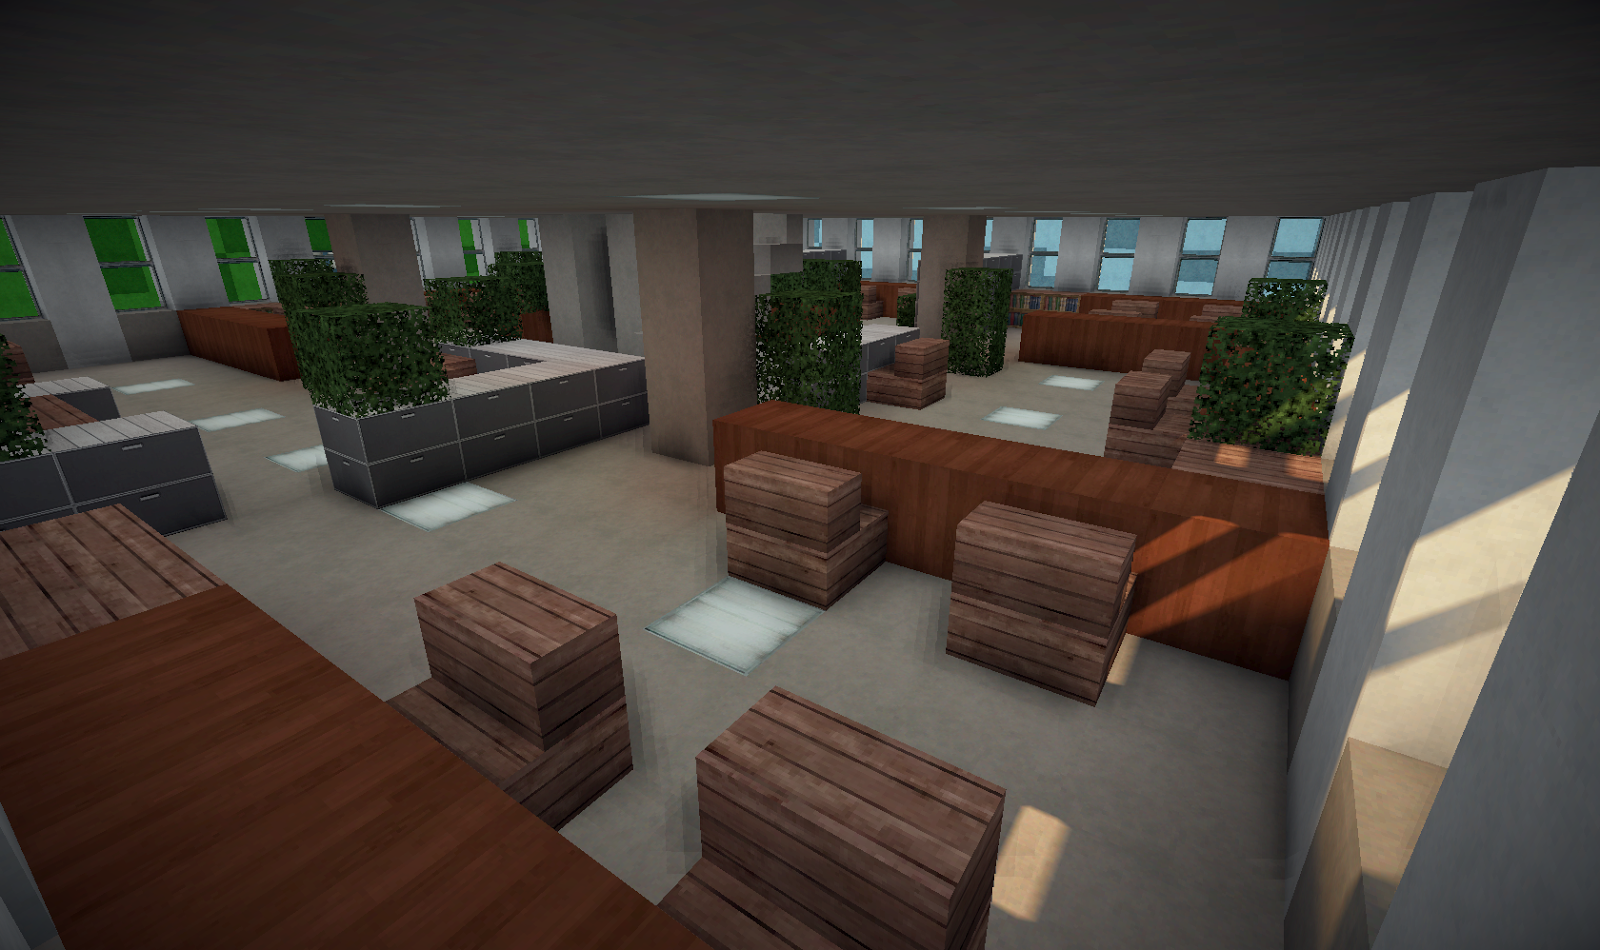 Minecraft Office Building Inside Interior Designs